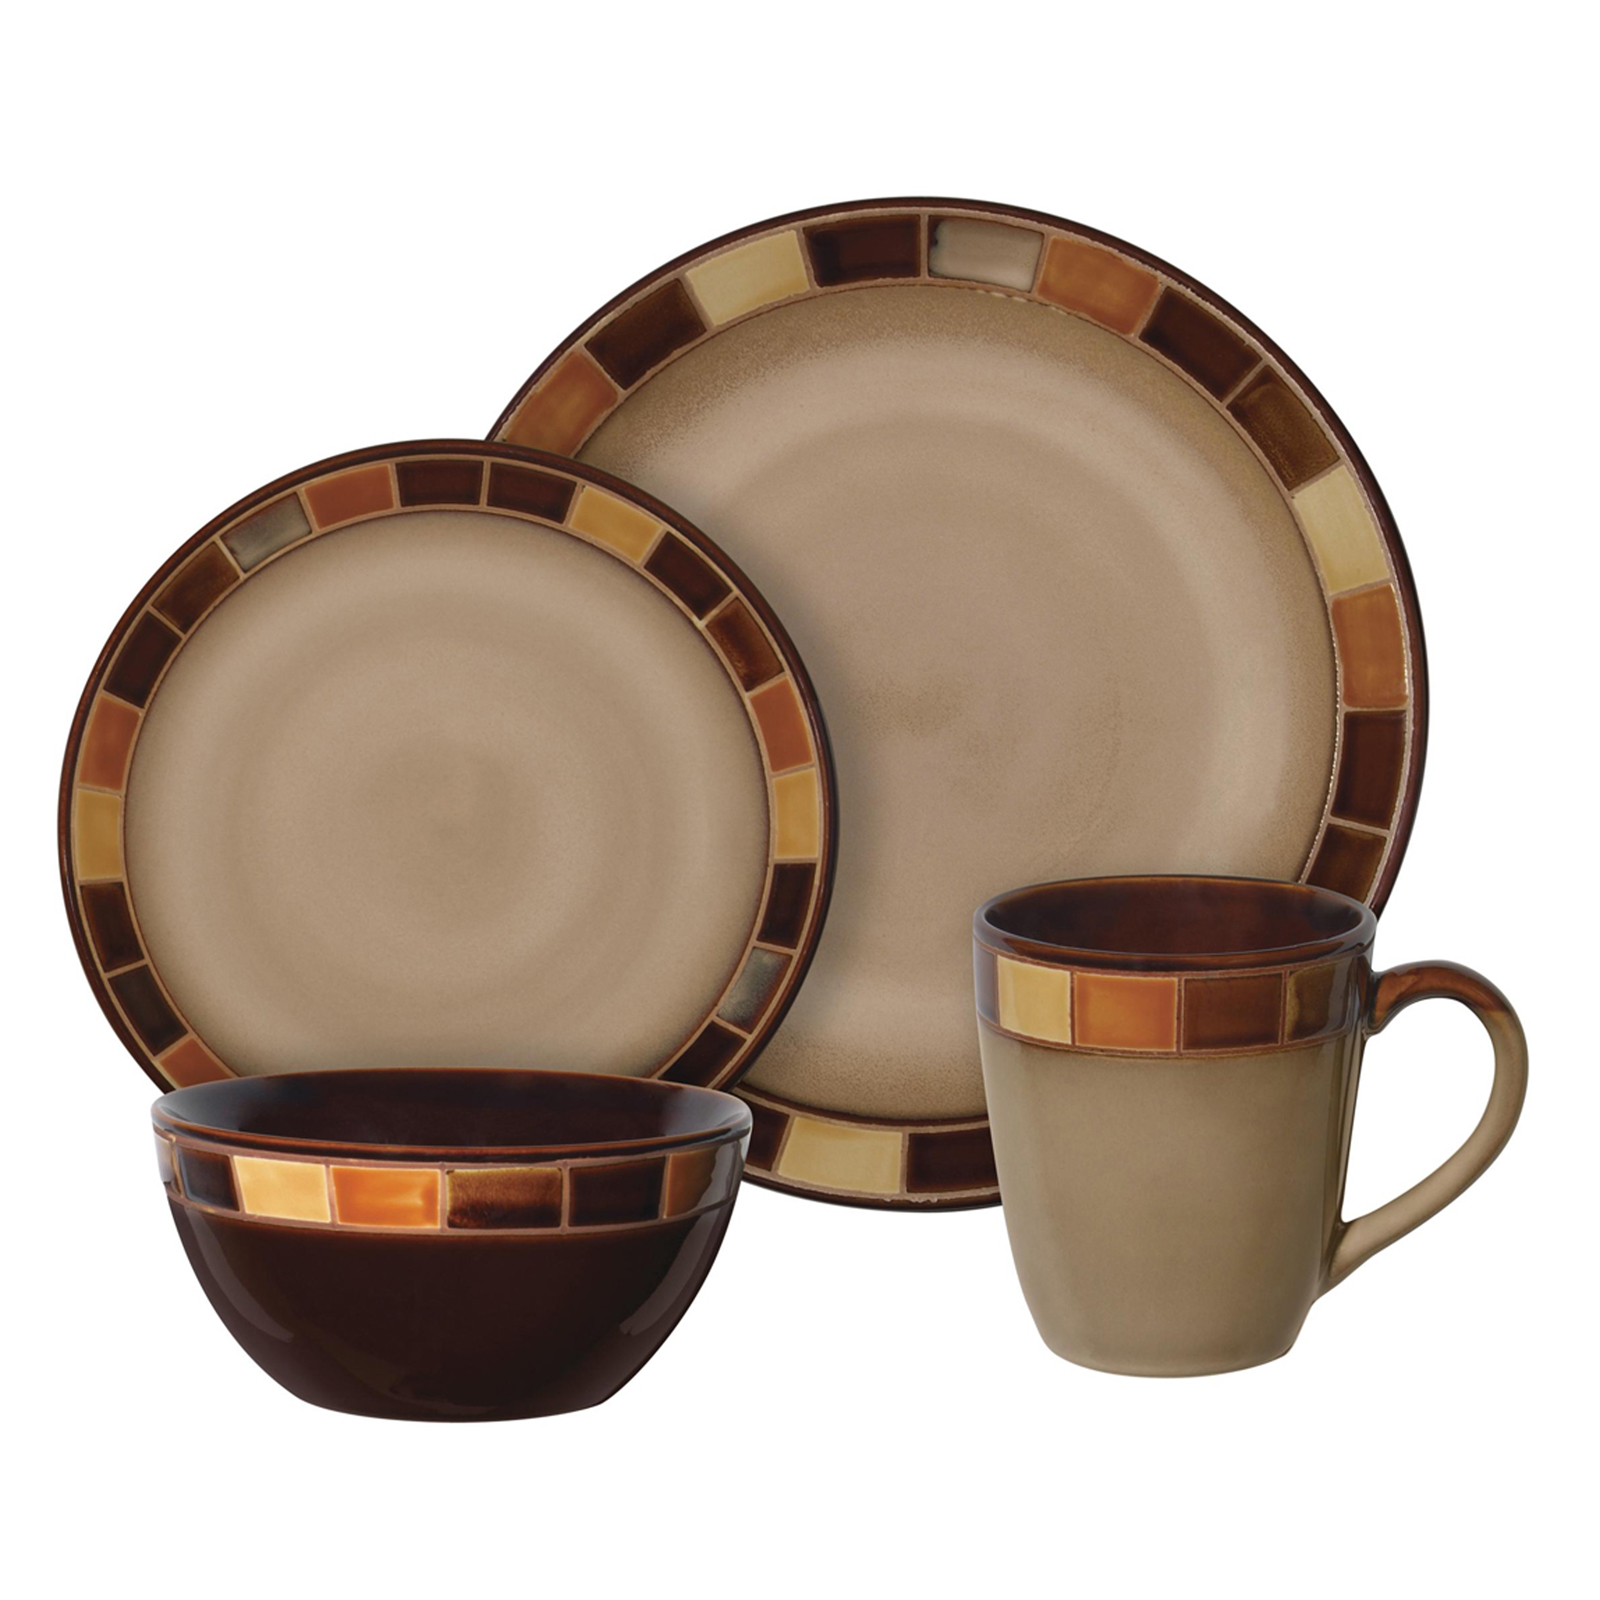 Stoneware Dinnerware Sets | Square Dinnerware | Dishes Set